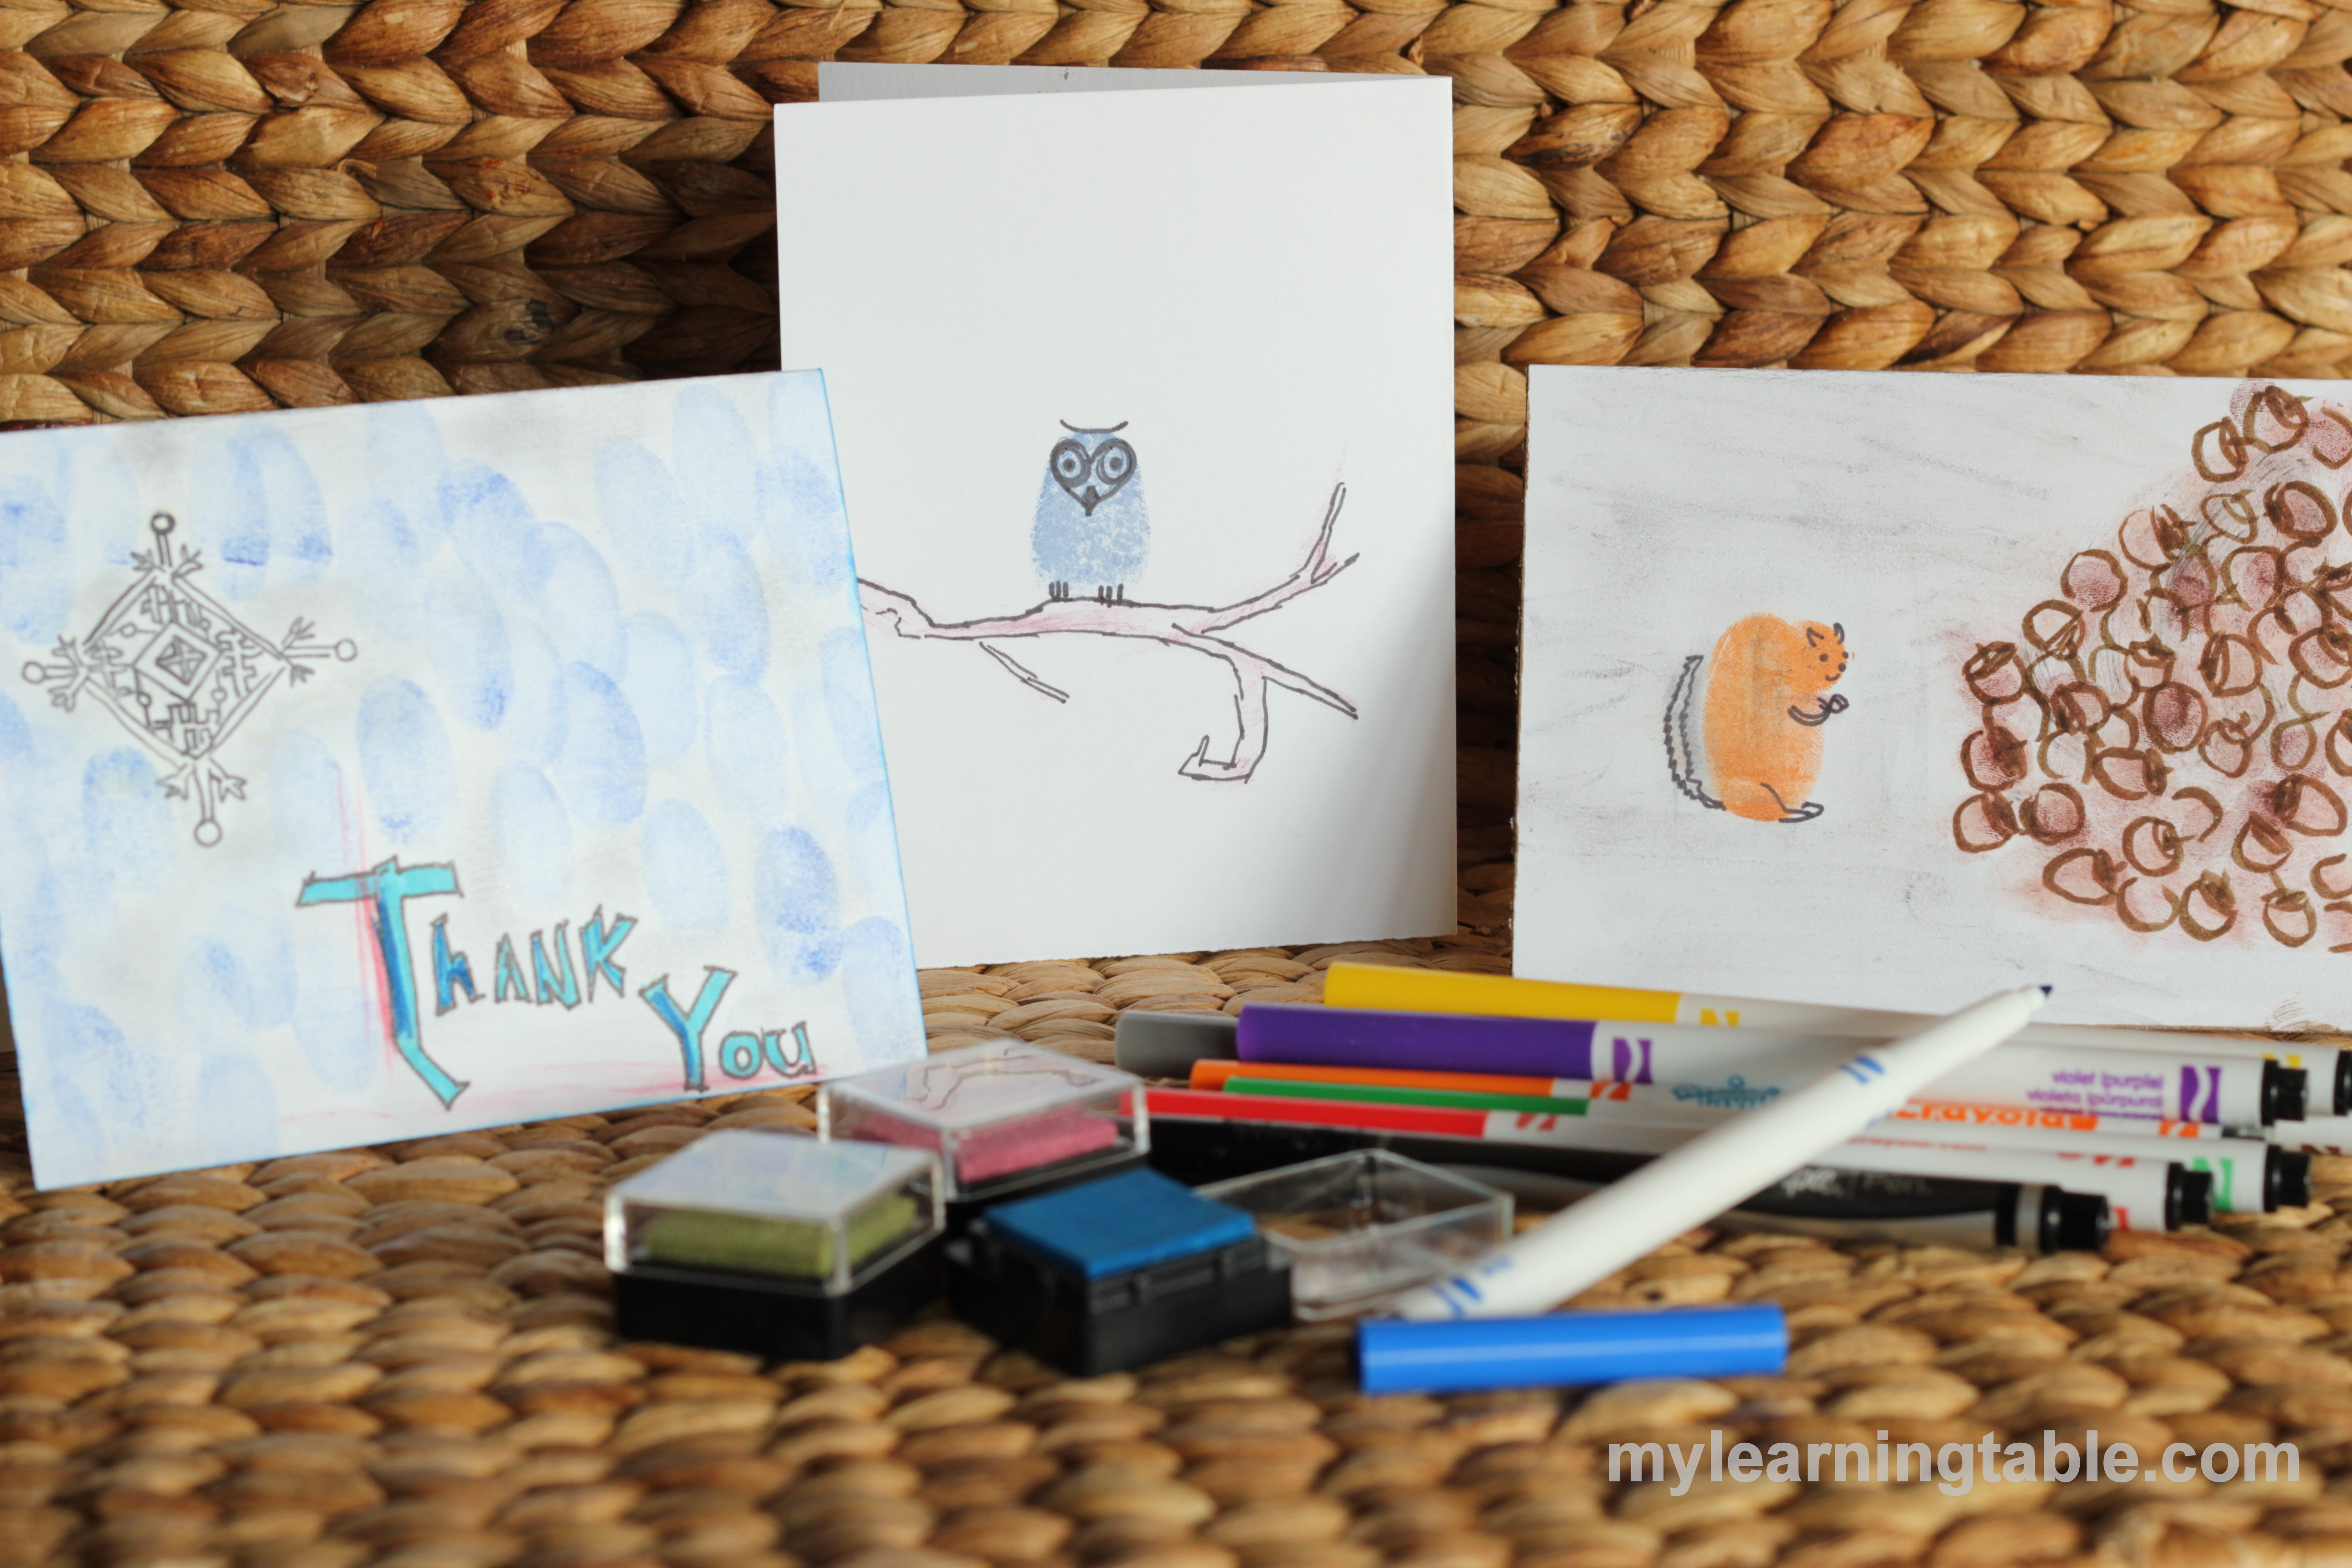 HOMEMADE THANK YOU CARDS #languagearts #craft mylearningtable.com